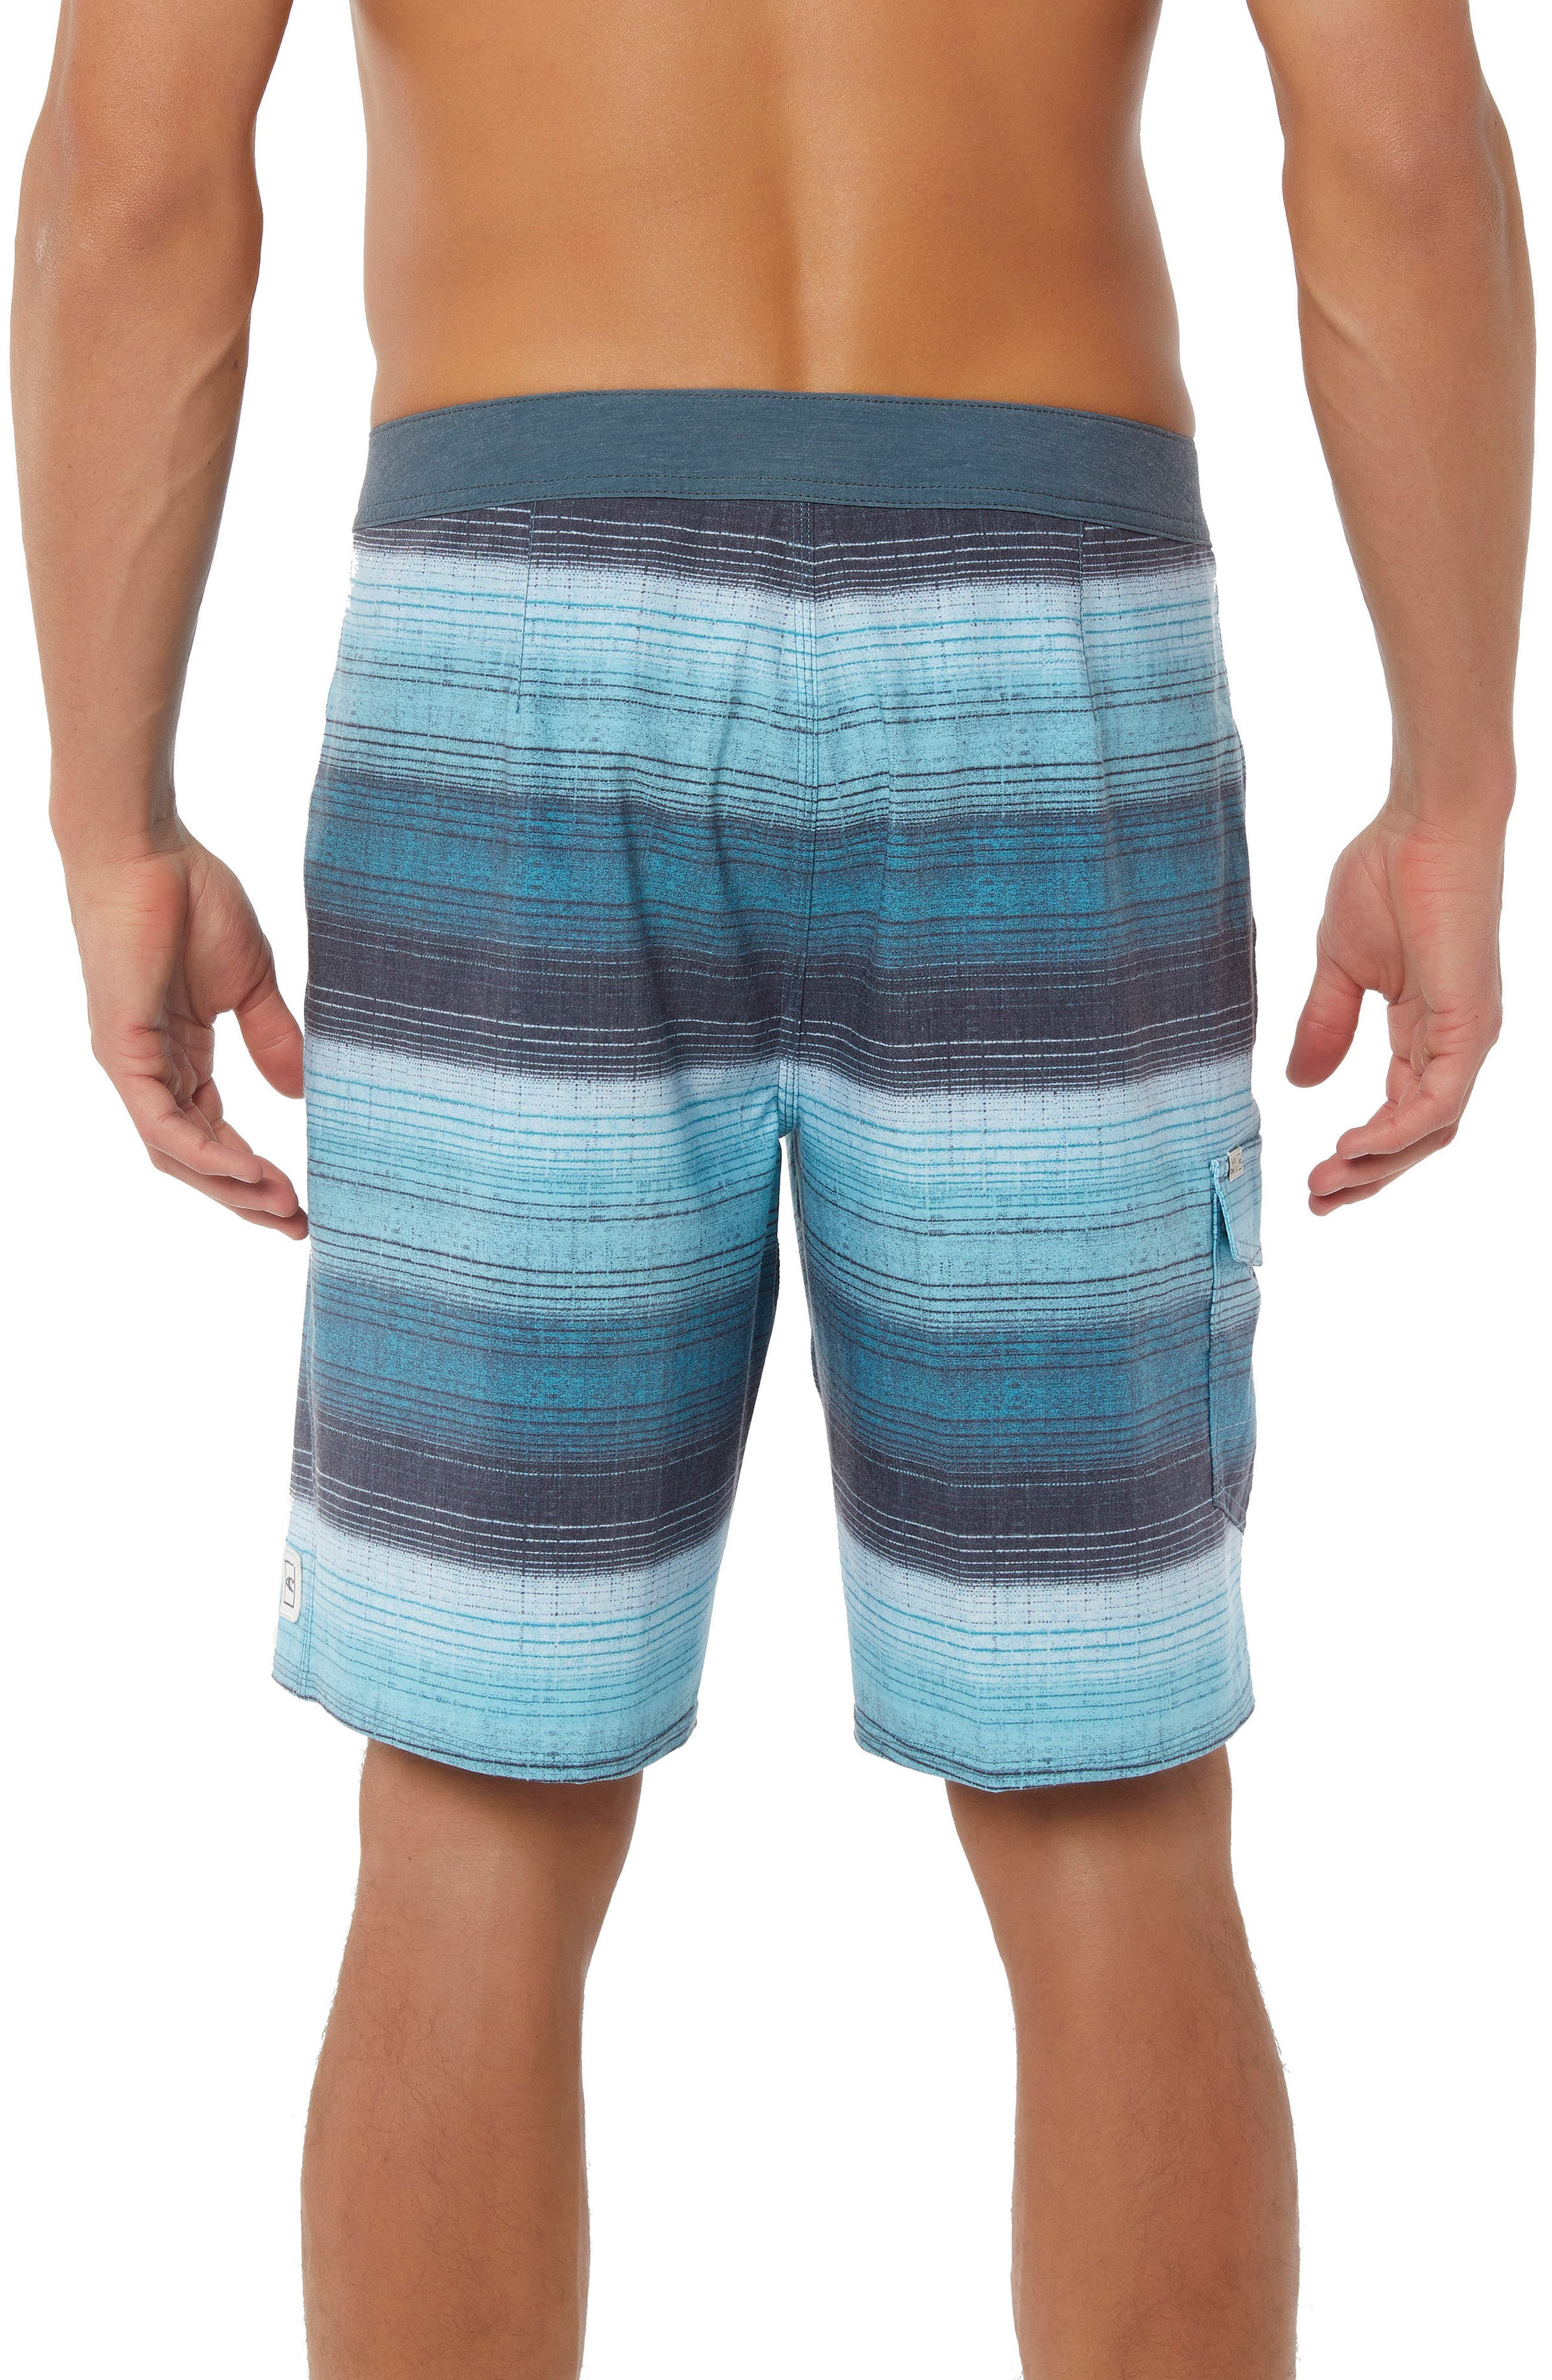 Barrels Swim Trunks,                             Alternate thumbnail 2, color,                             431